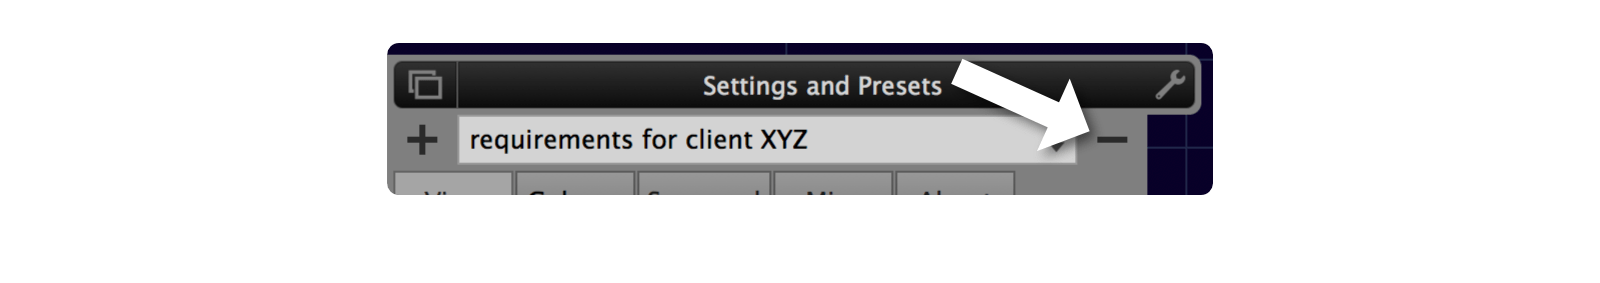 Preset delete button